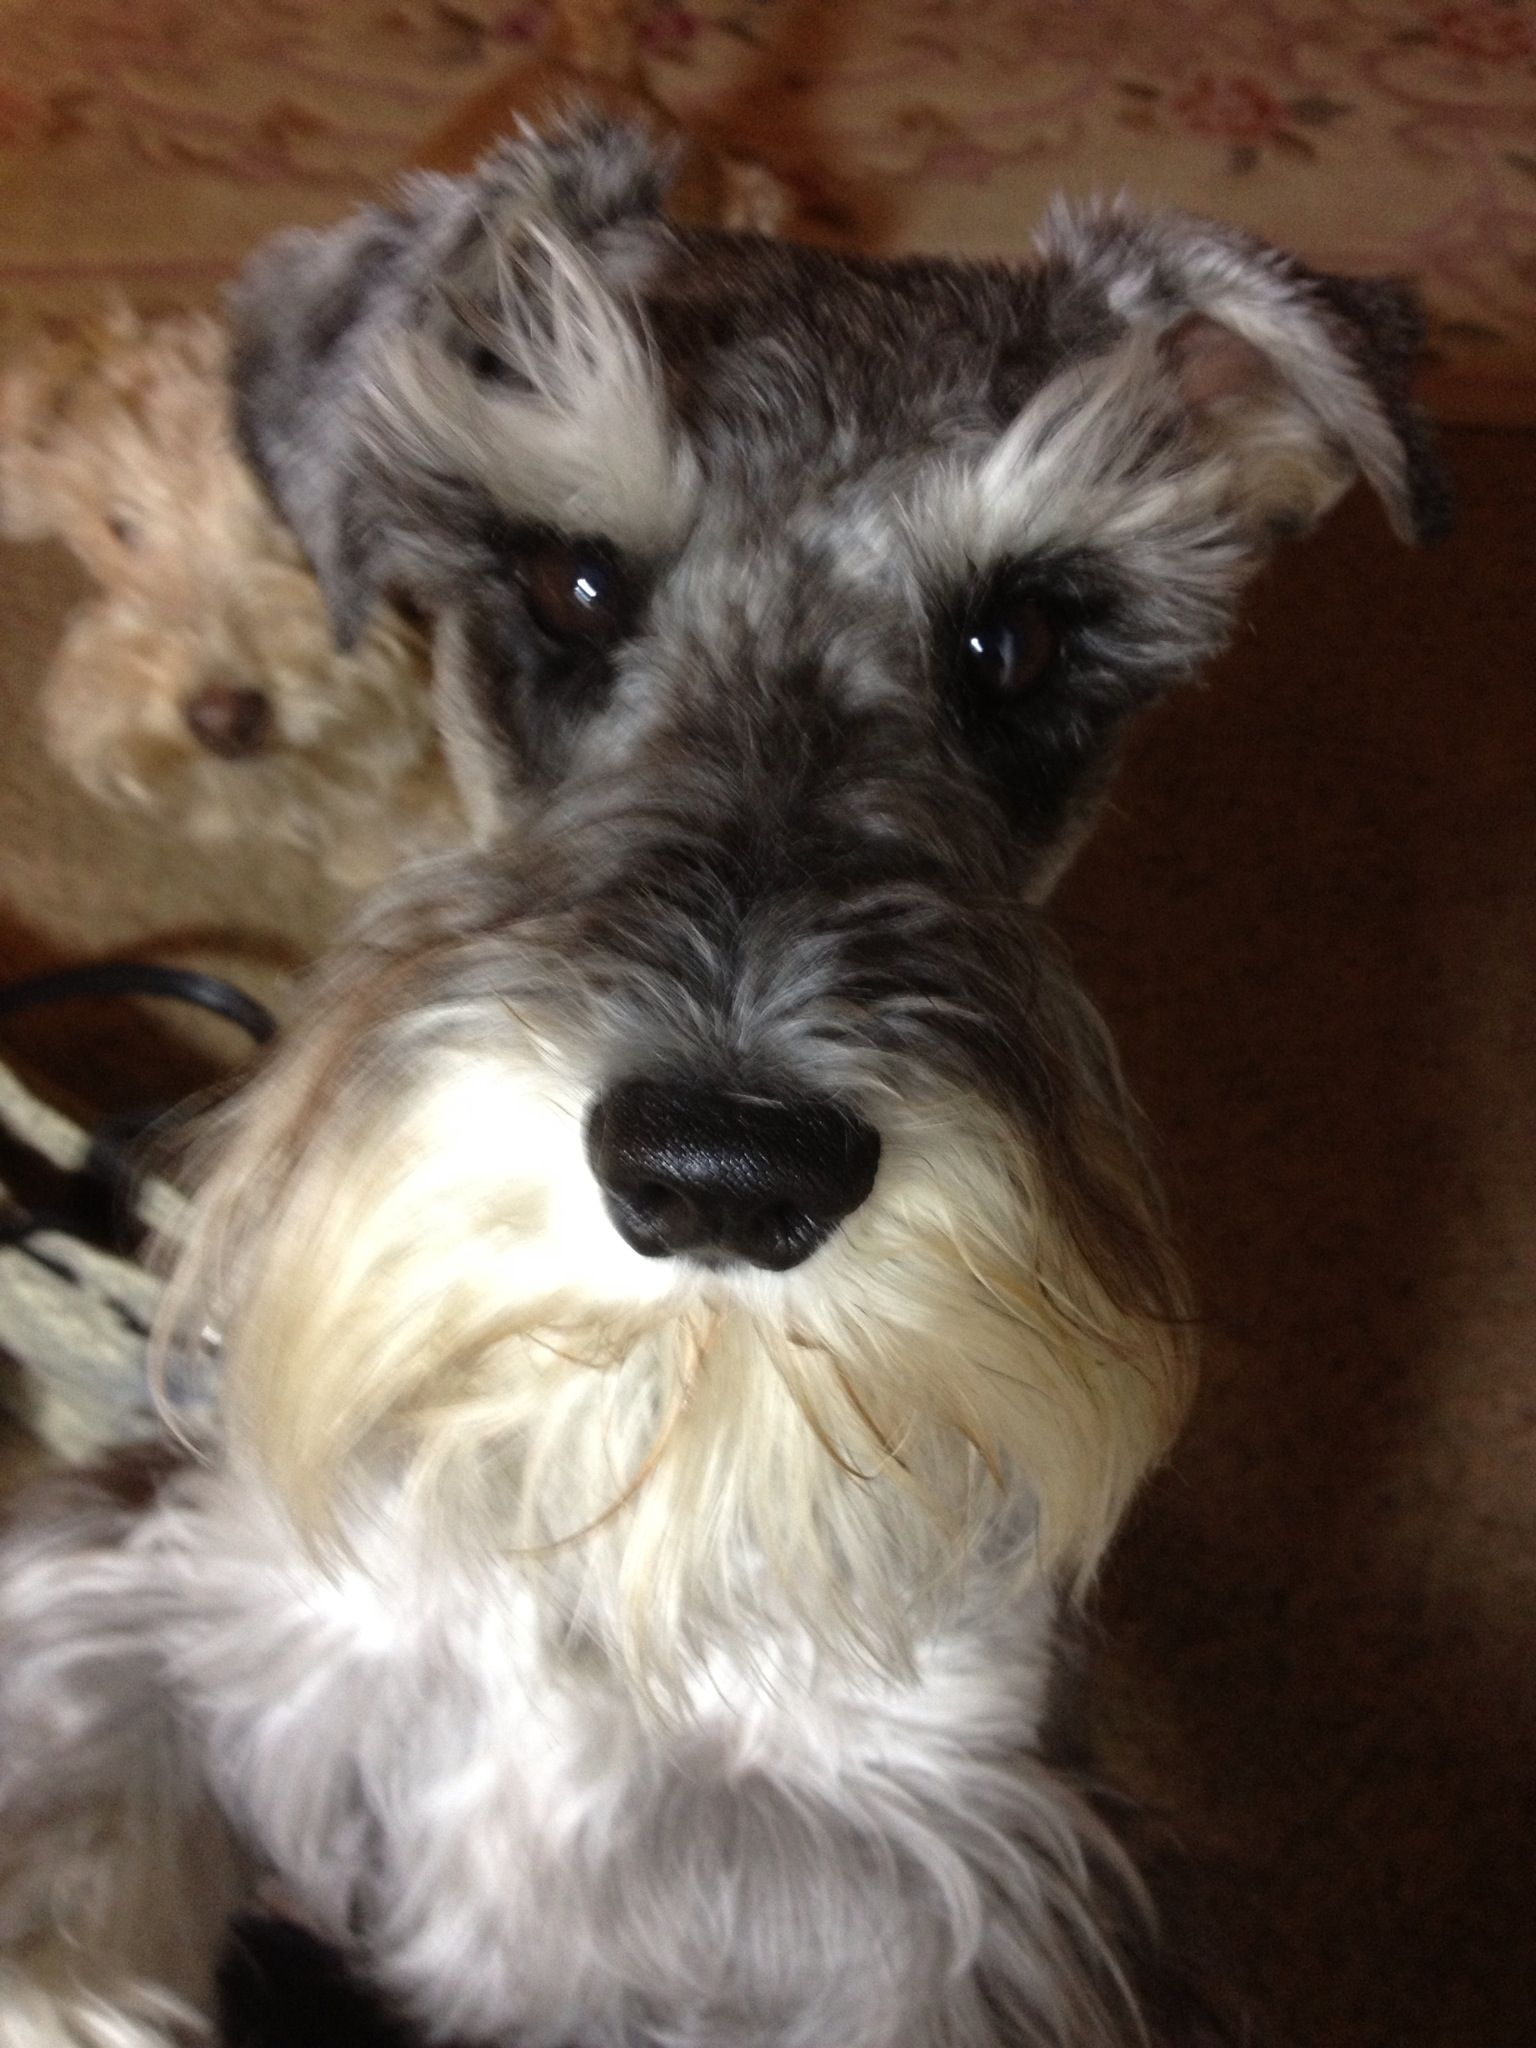 Sweet Little Mini Schnauzer With A Darling Face And Eyes To Melt Your Heart Miniature Schnauzer Schnauzer Puppy Miniature Schnauzer Puppies